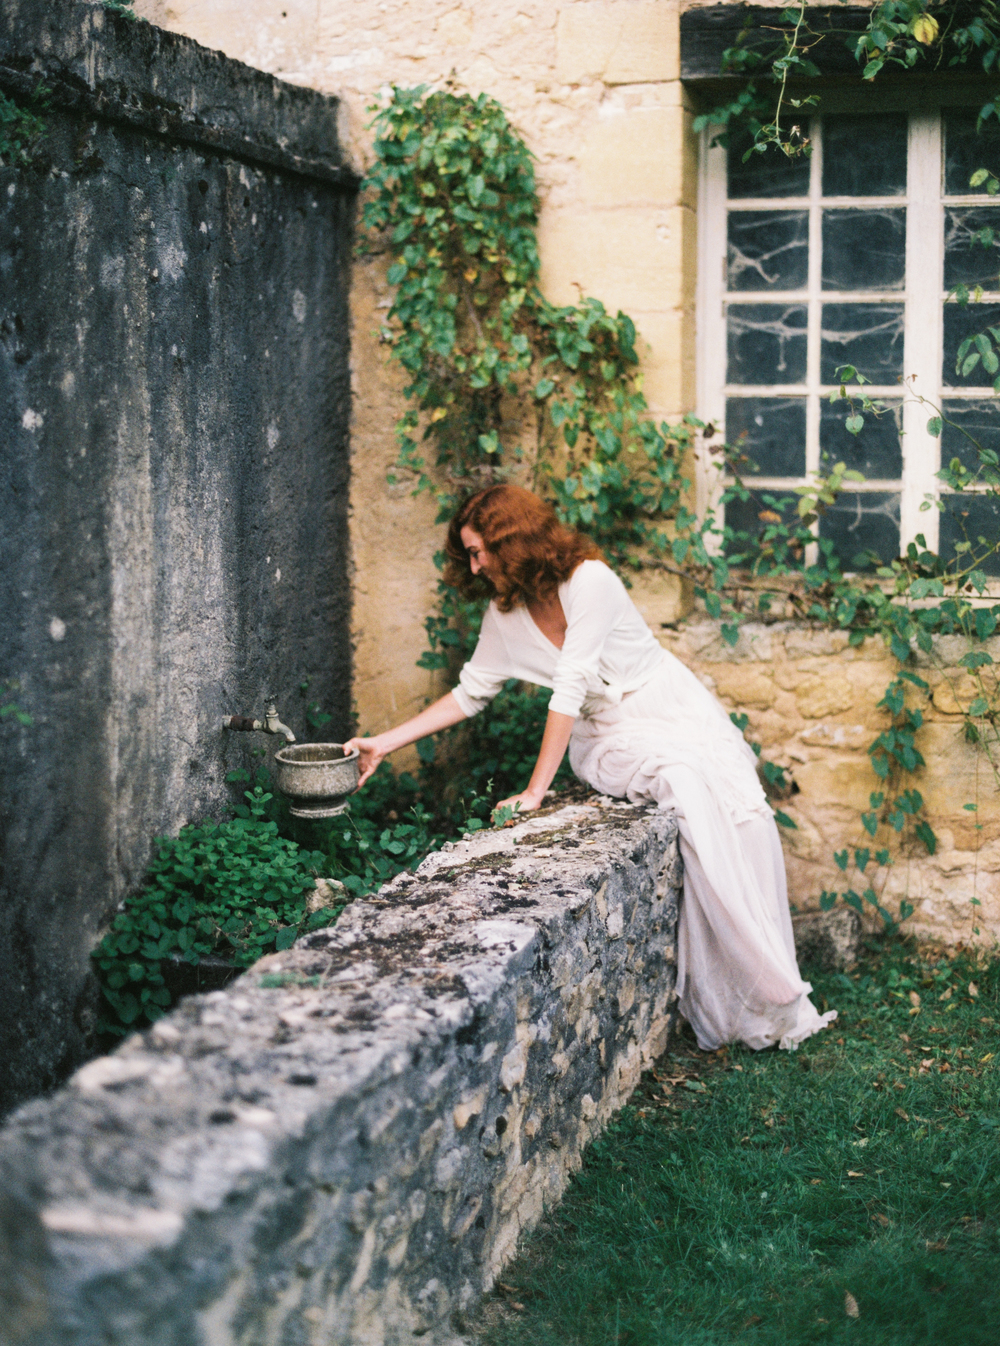 Photo by Tamara Gigola. European Workshop by Ginny Au. Inspirational bridal shoot. Dress by Gossamer Vintage. France. Dordogne.